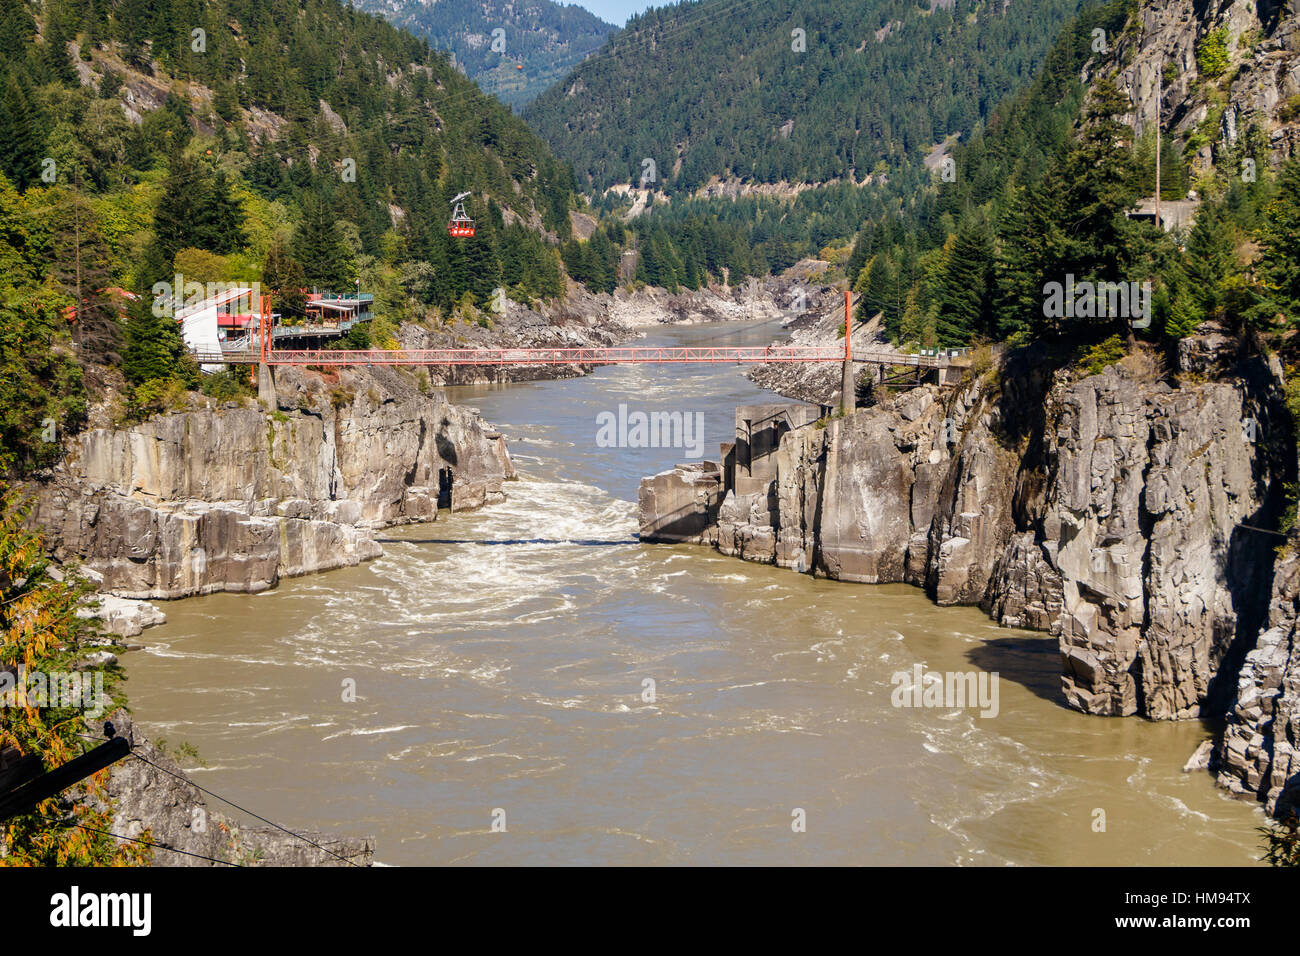 Hell's Gate and Fraser River in British Columbia, Canada. The Air Tram and pedestrian suspension bridge. Stock Photo